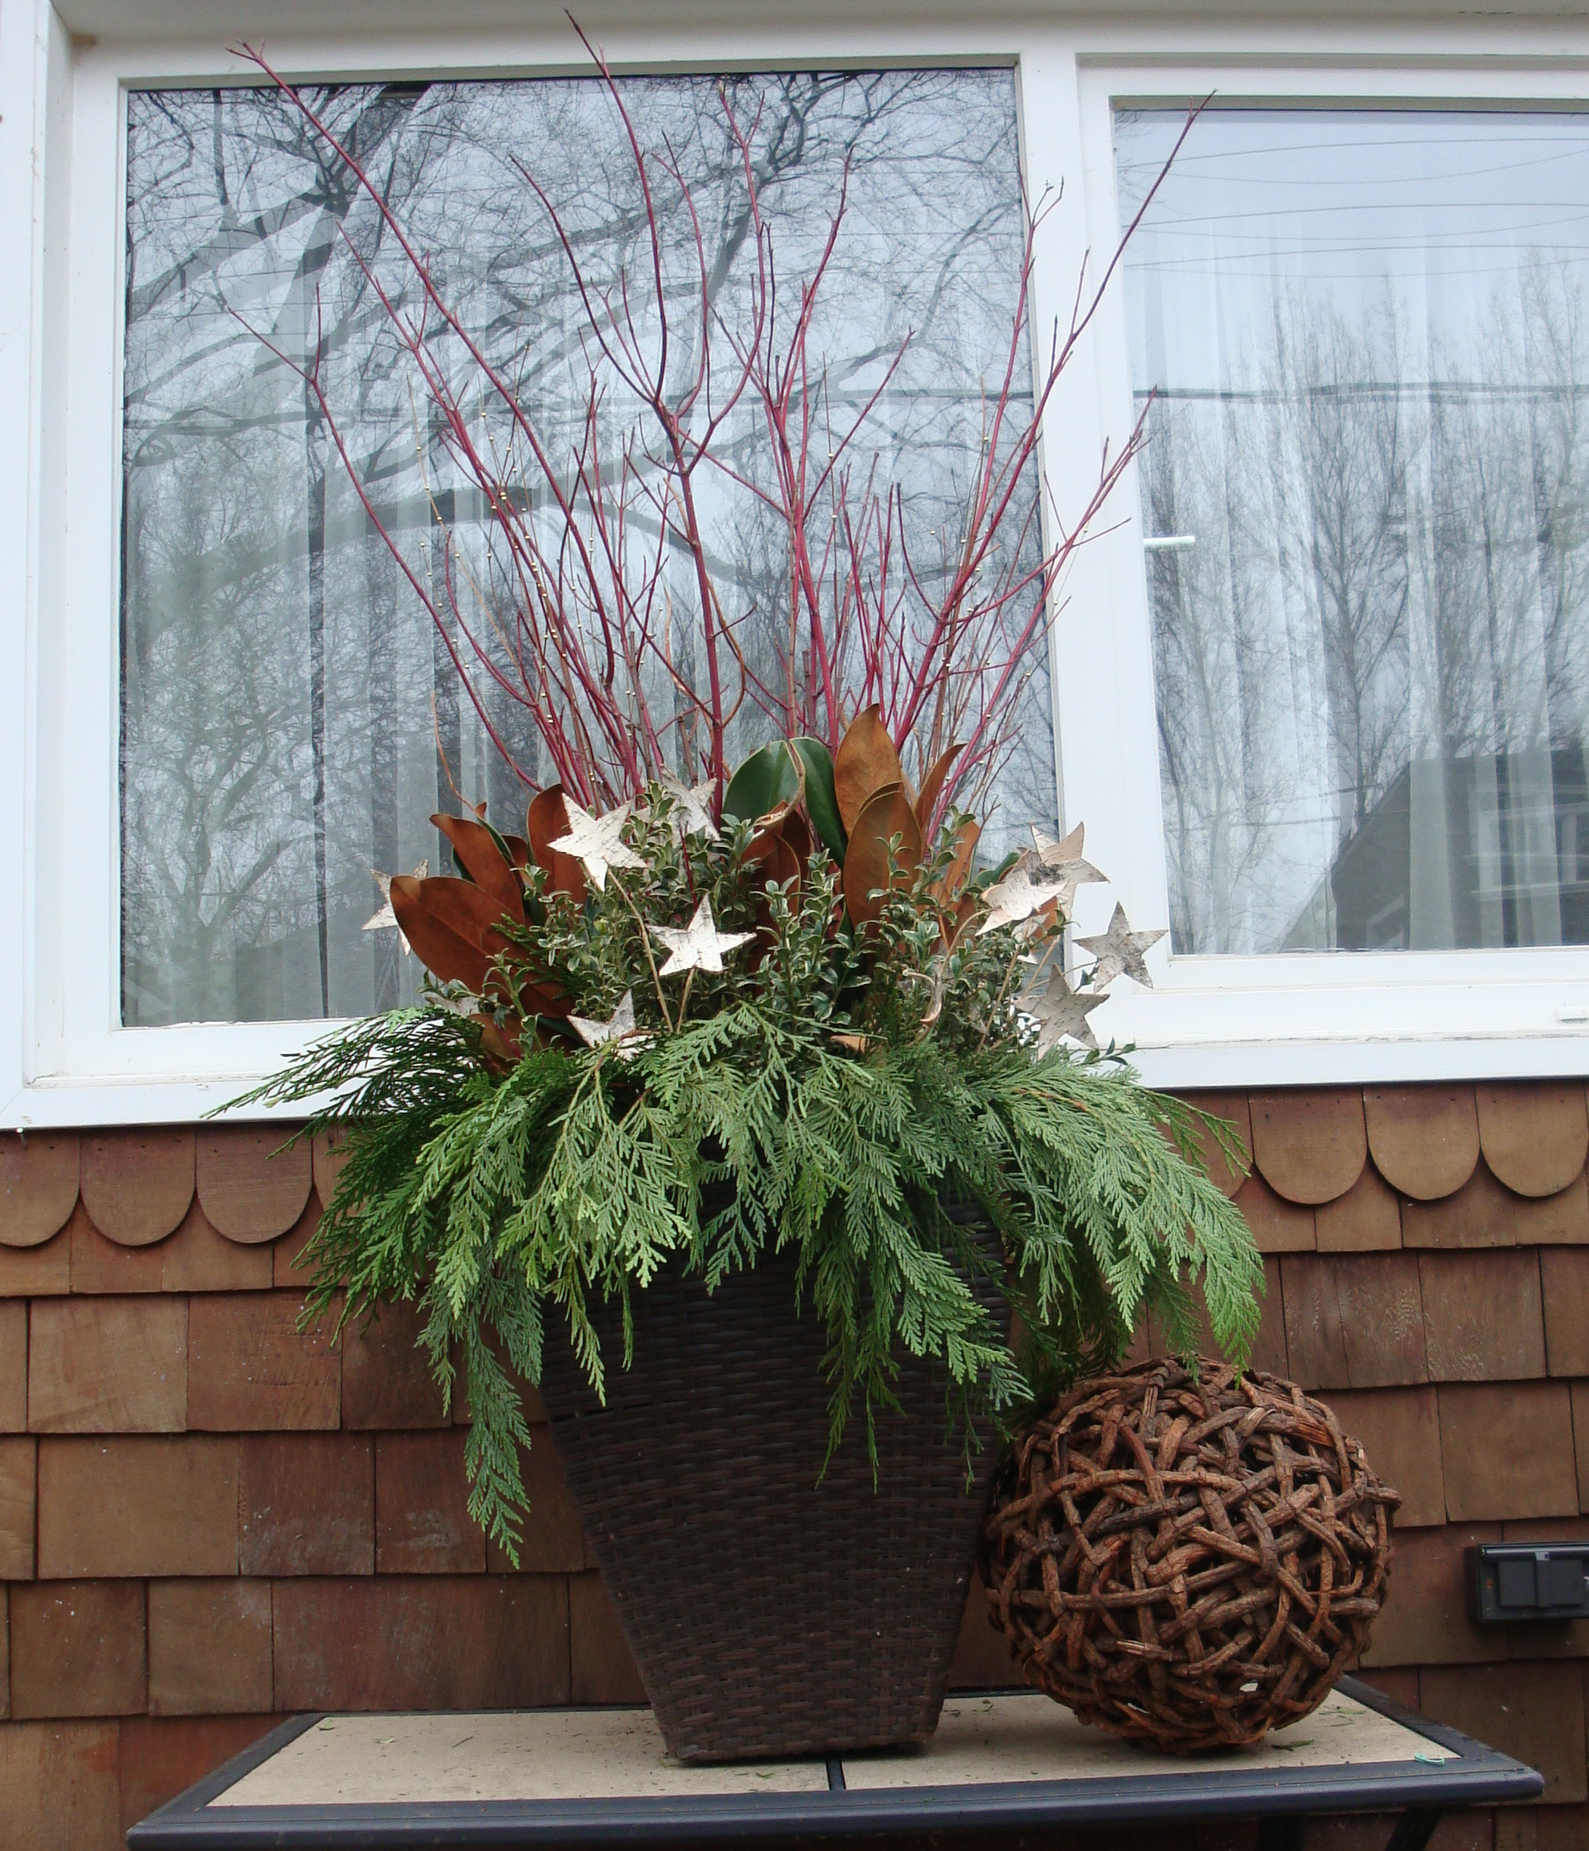 Outdoor Christmas Urns http://flohaus.com/2010/12/06/diy-winter-urns/